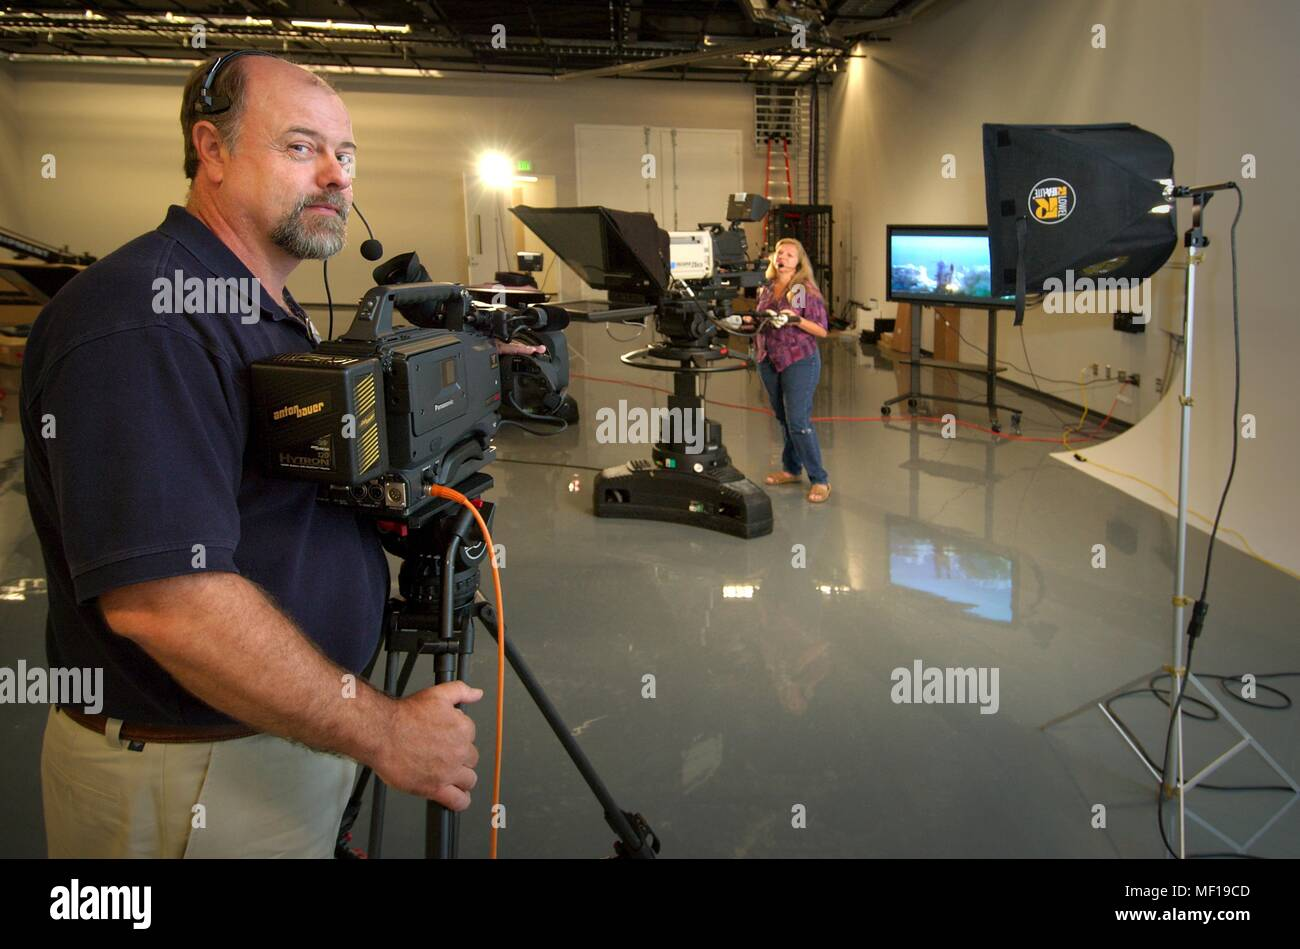 Cameraman shooting a live show at Centers for Disease Control (CDC